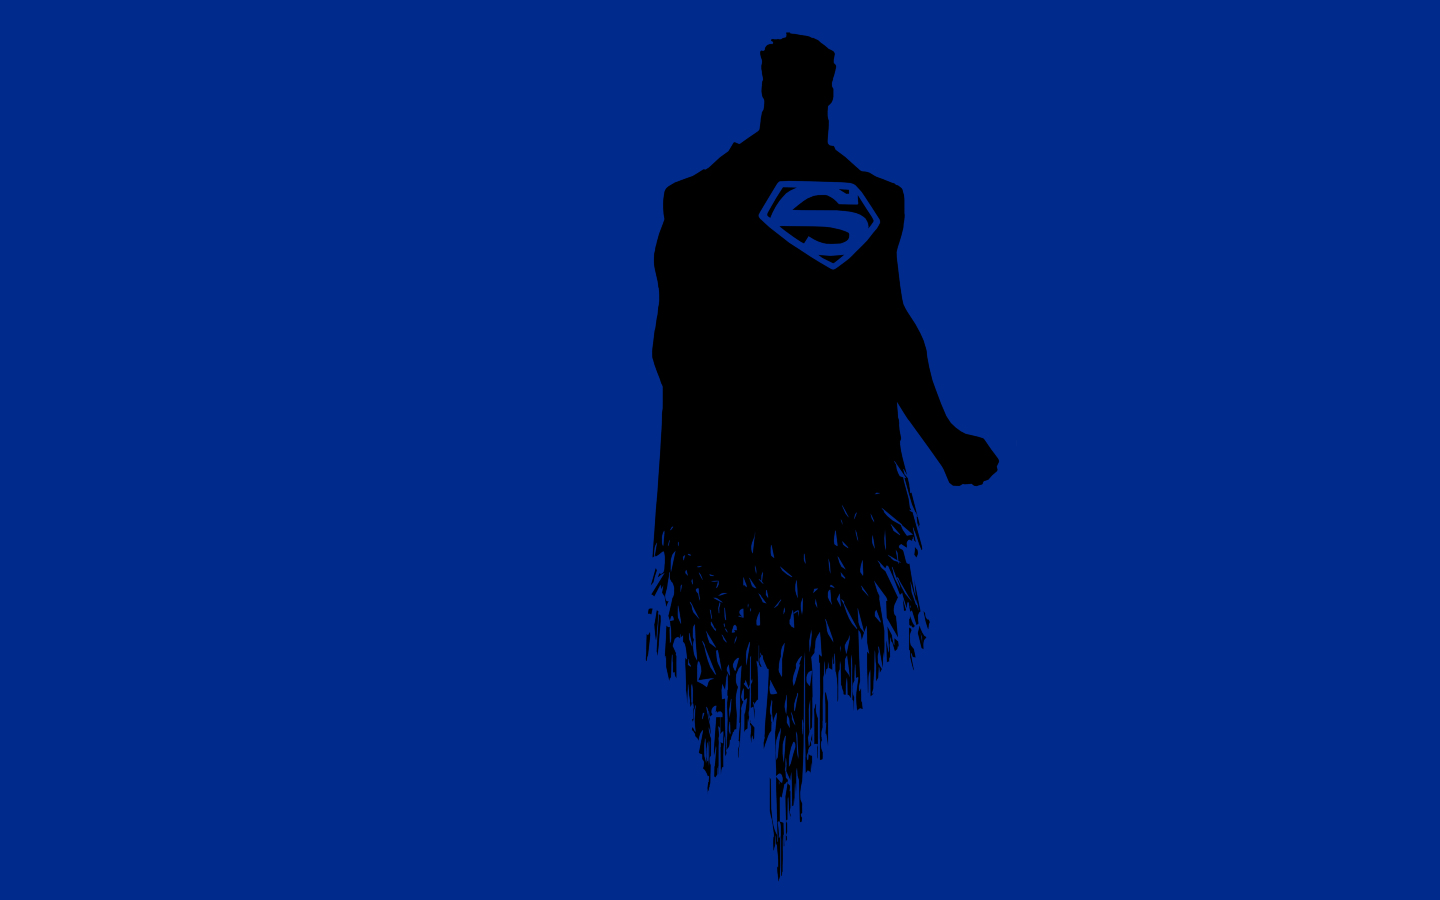 Download Pubg Minimalist Pophead 7680x4320 Resolution: Download Superman Minimalism Dc Comics 2160x3840